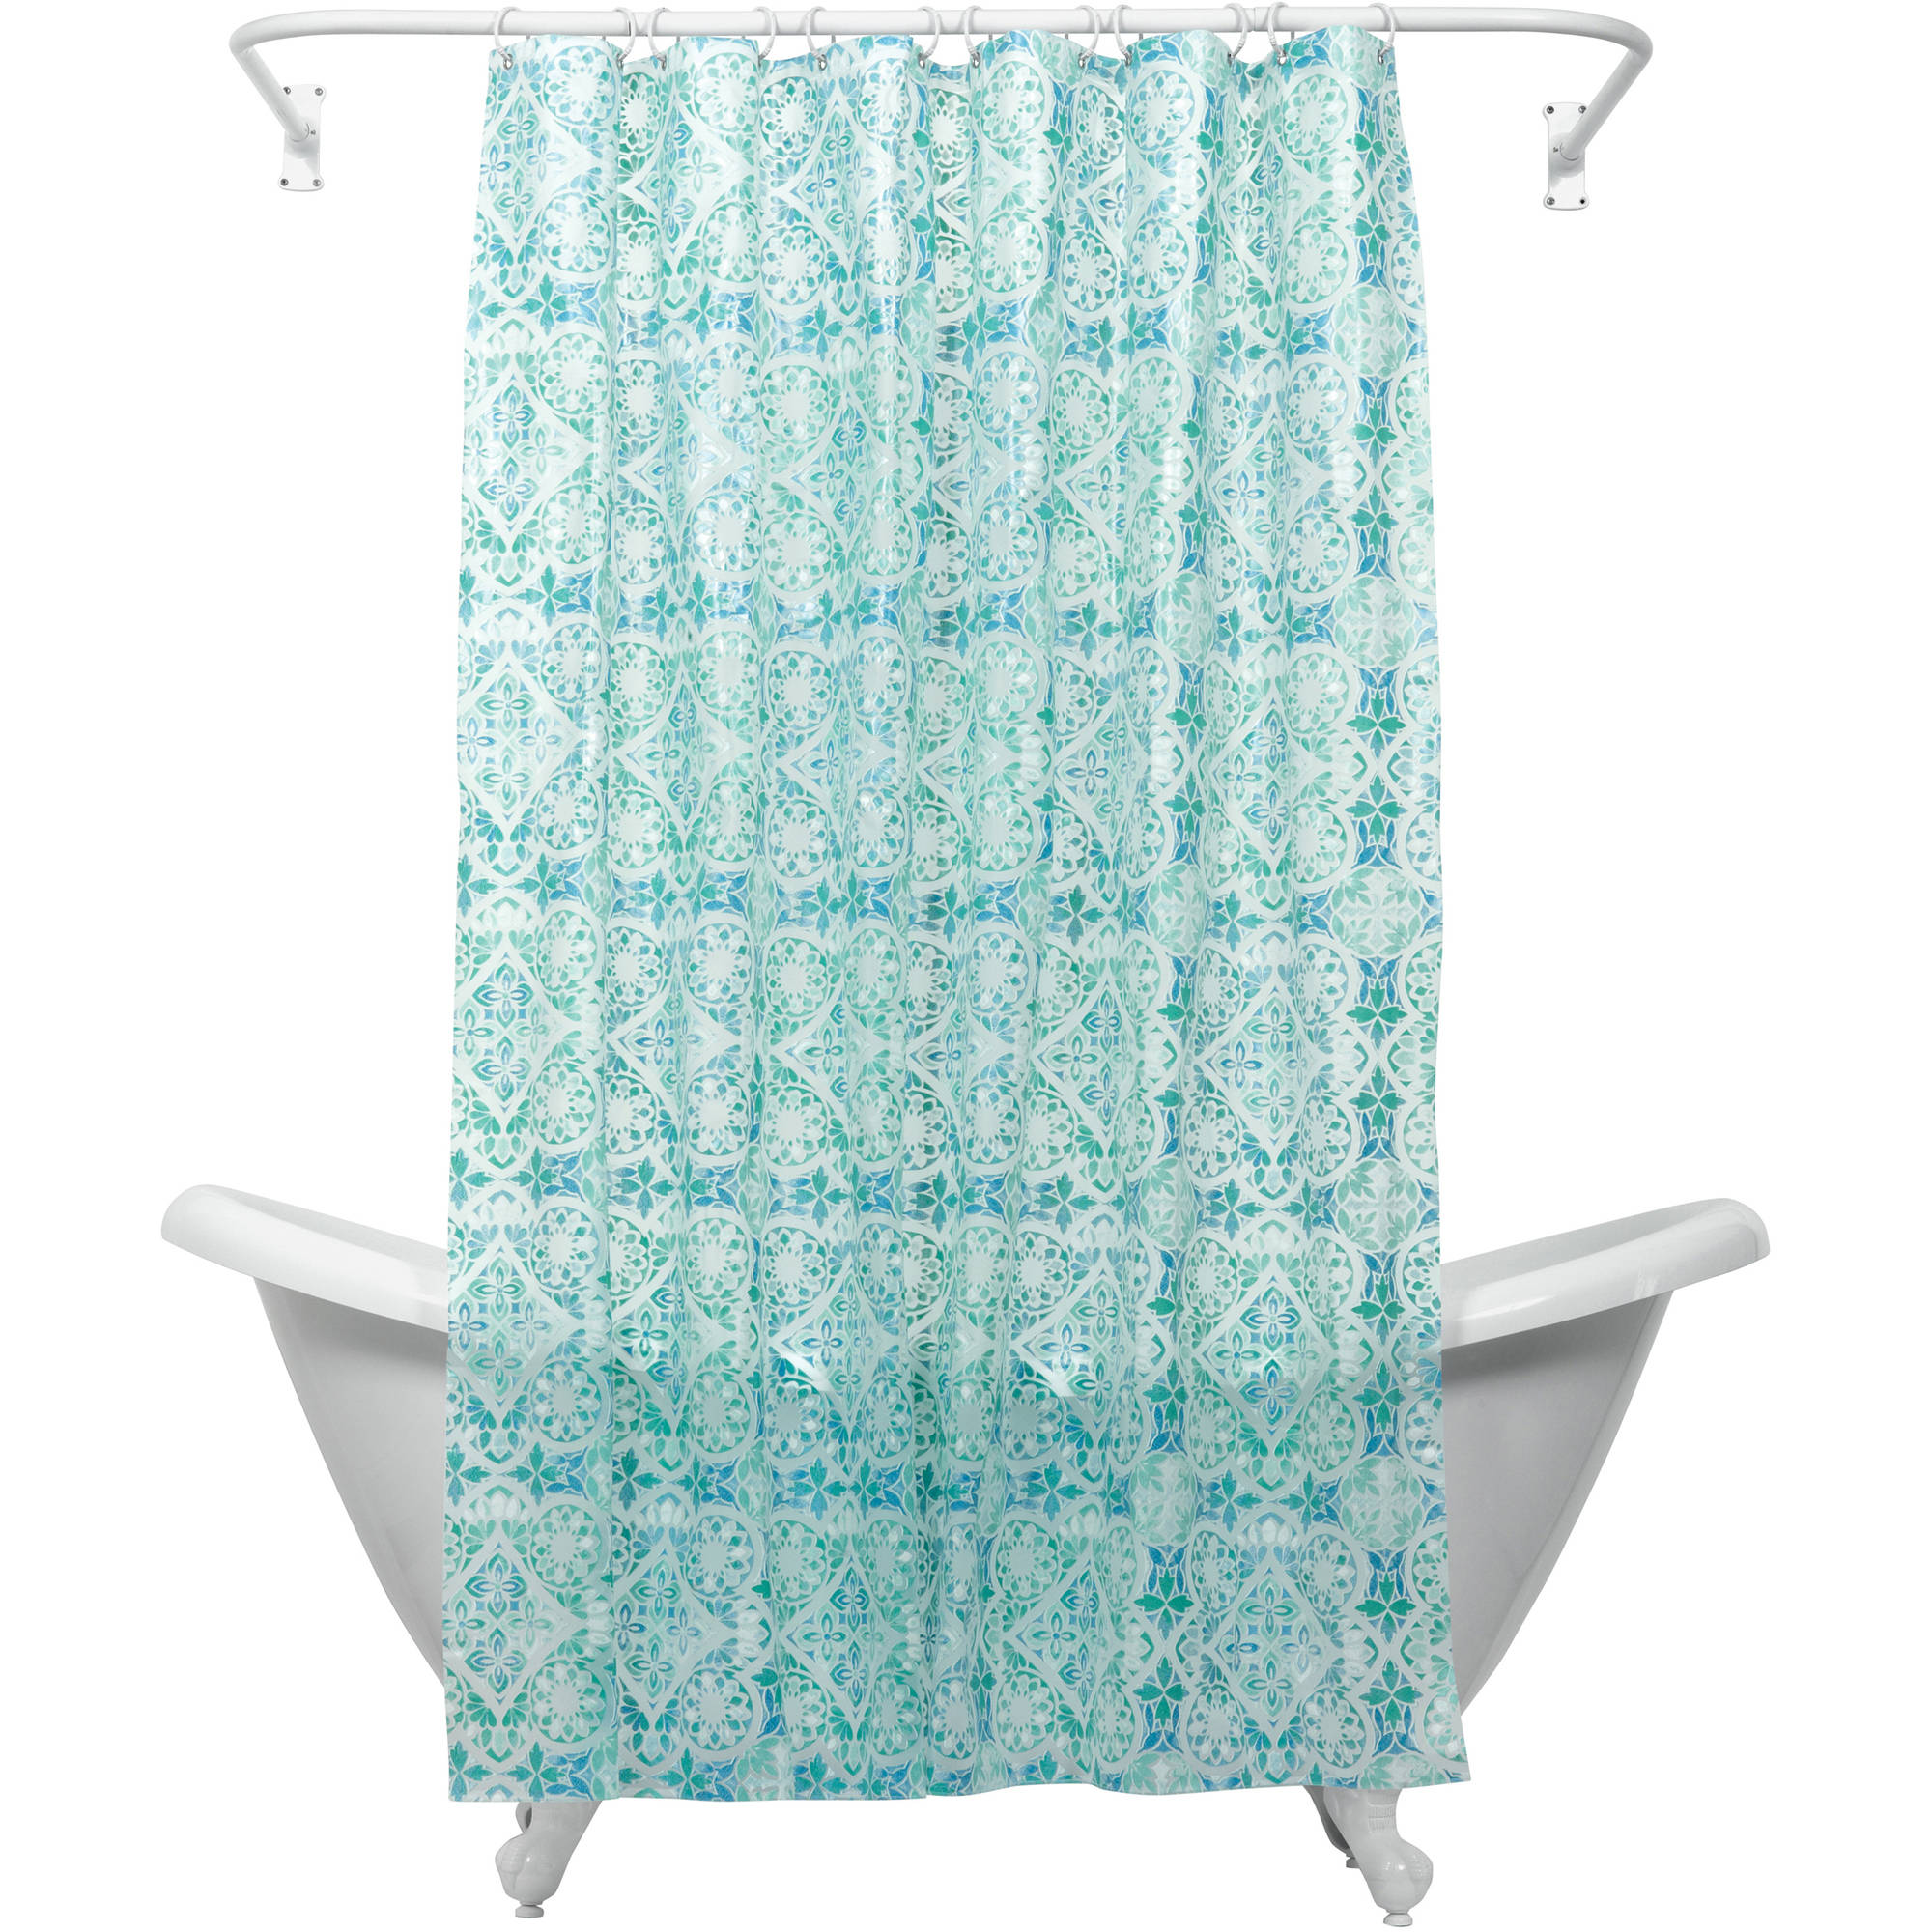 Zenna Home India Ink Morocco PEVA Shower Curtain Liner, Teal